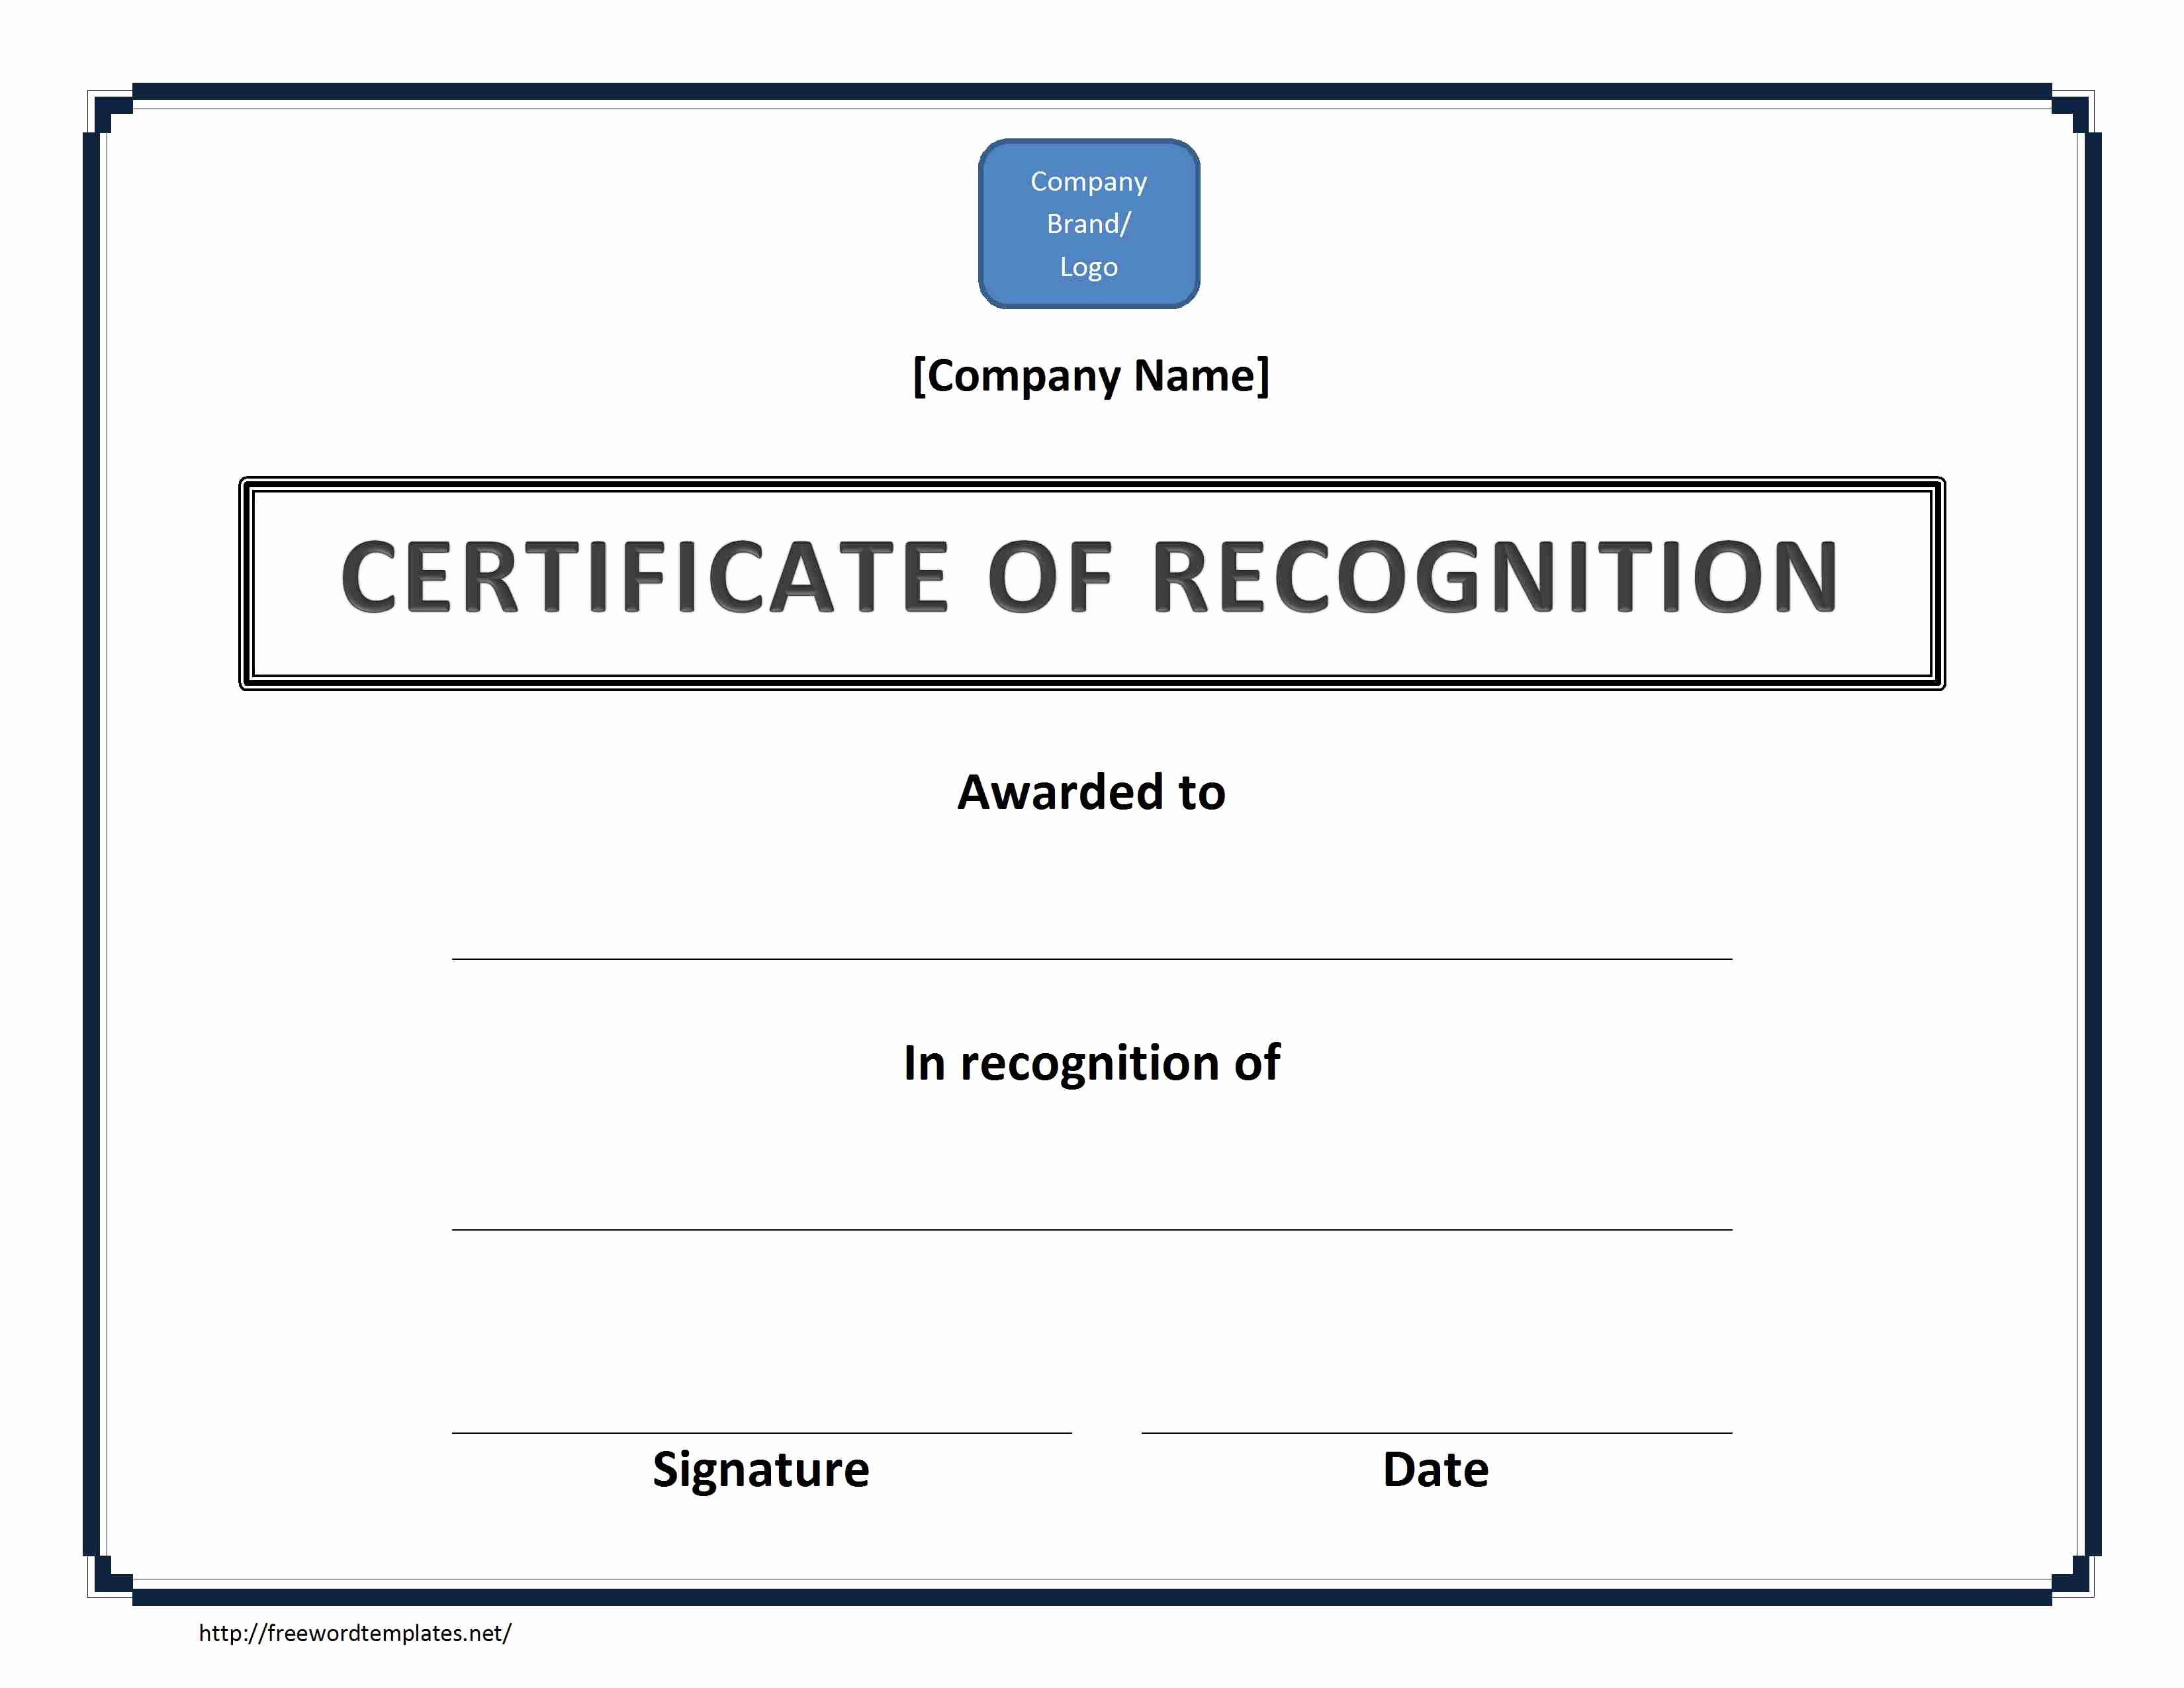 Certificate Of Recognition Template Word Unique Certificate Of Recognition